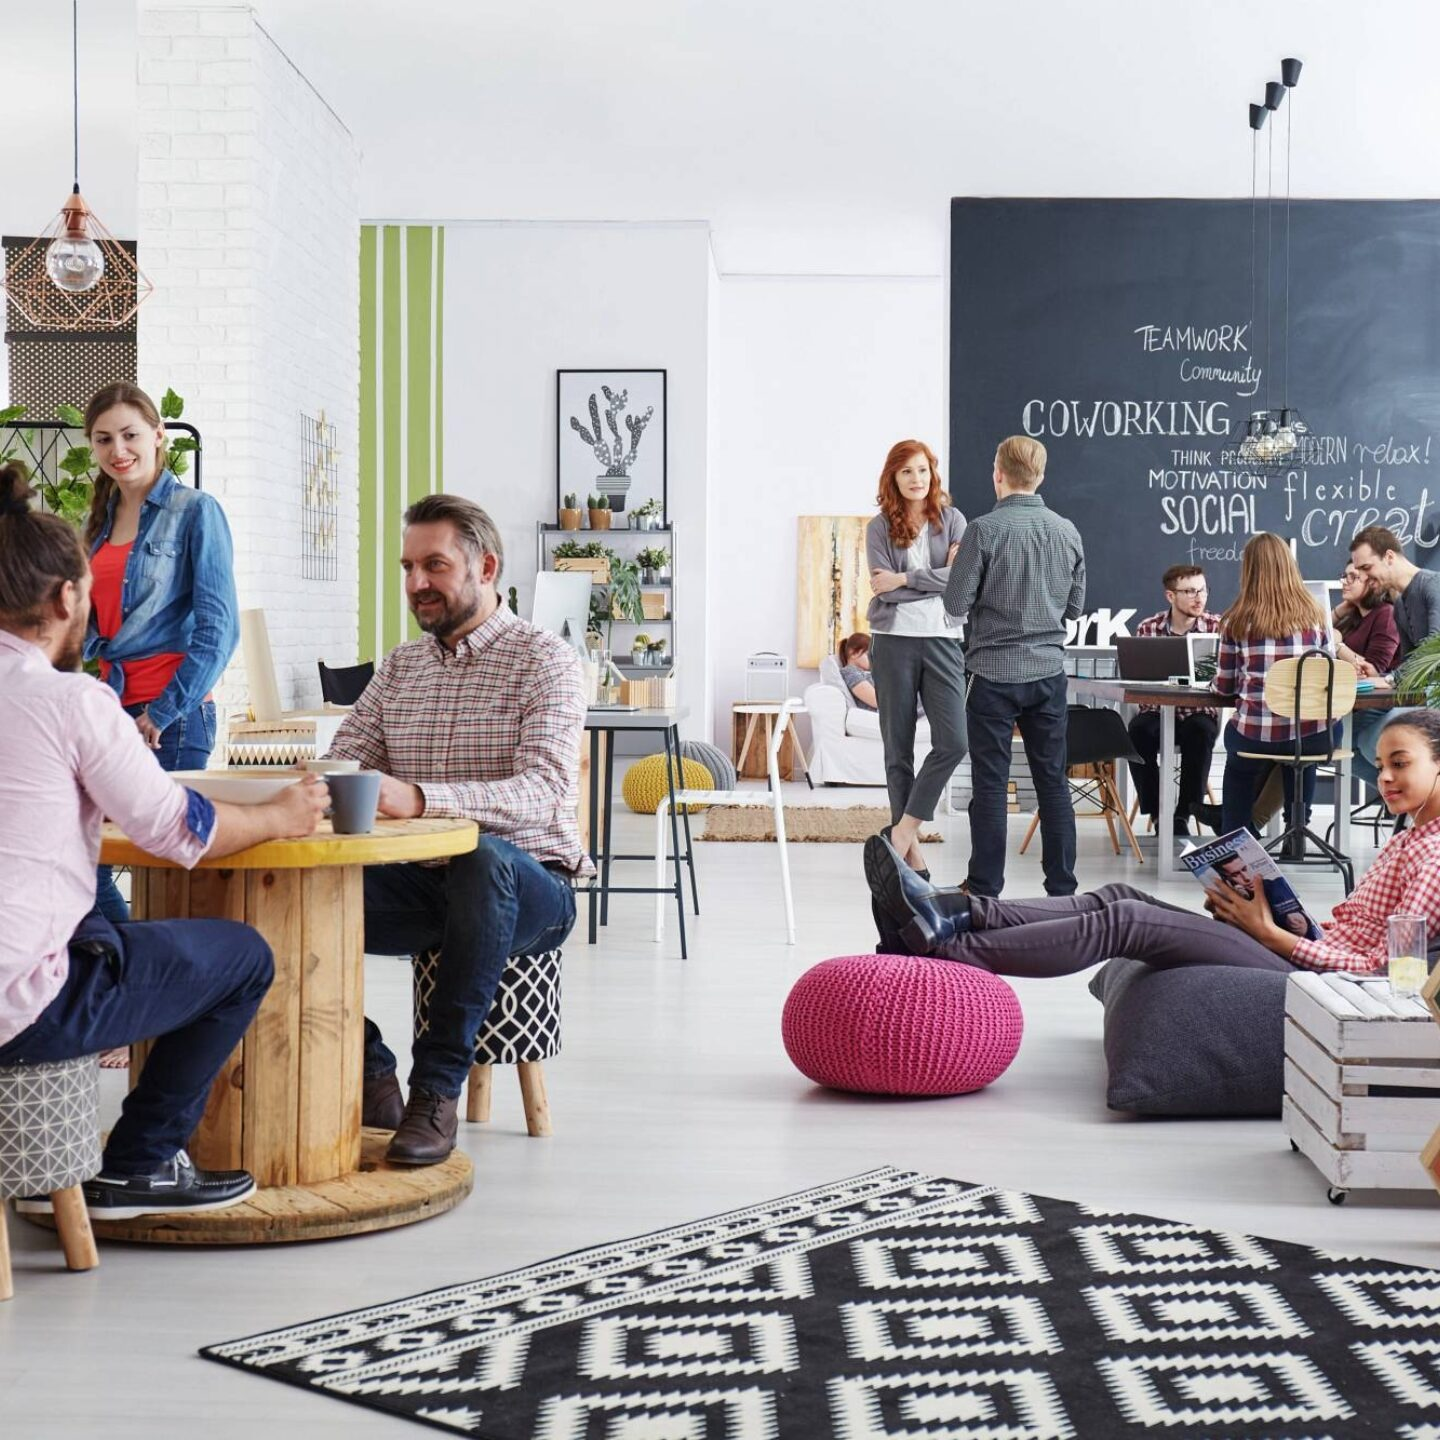 People relaxing during lunch break at office - Certifications for Sustainable Building Products | NSF International